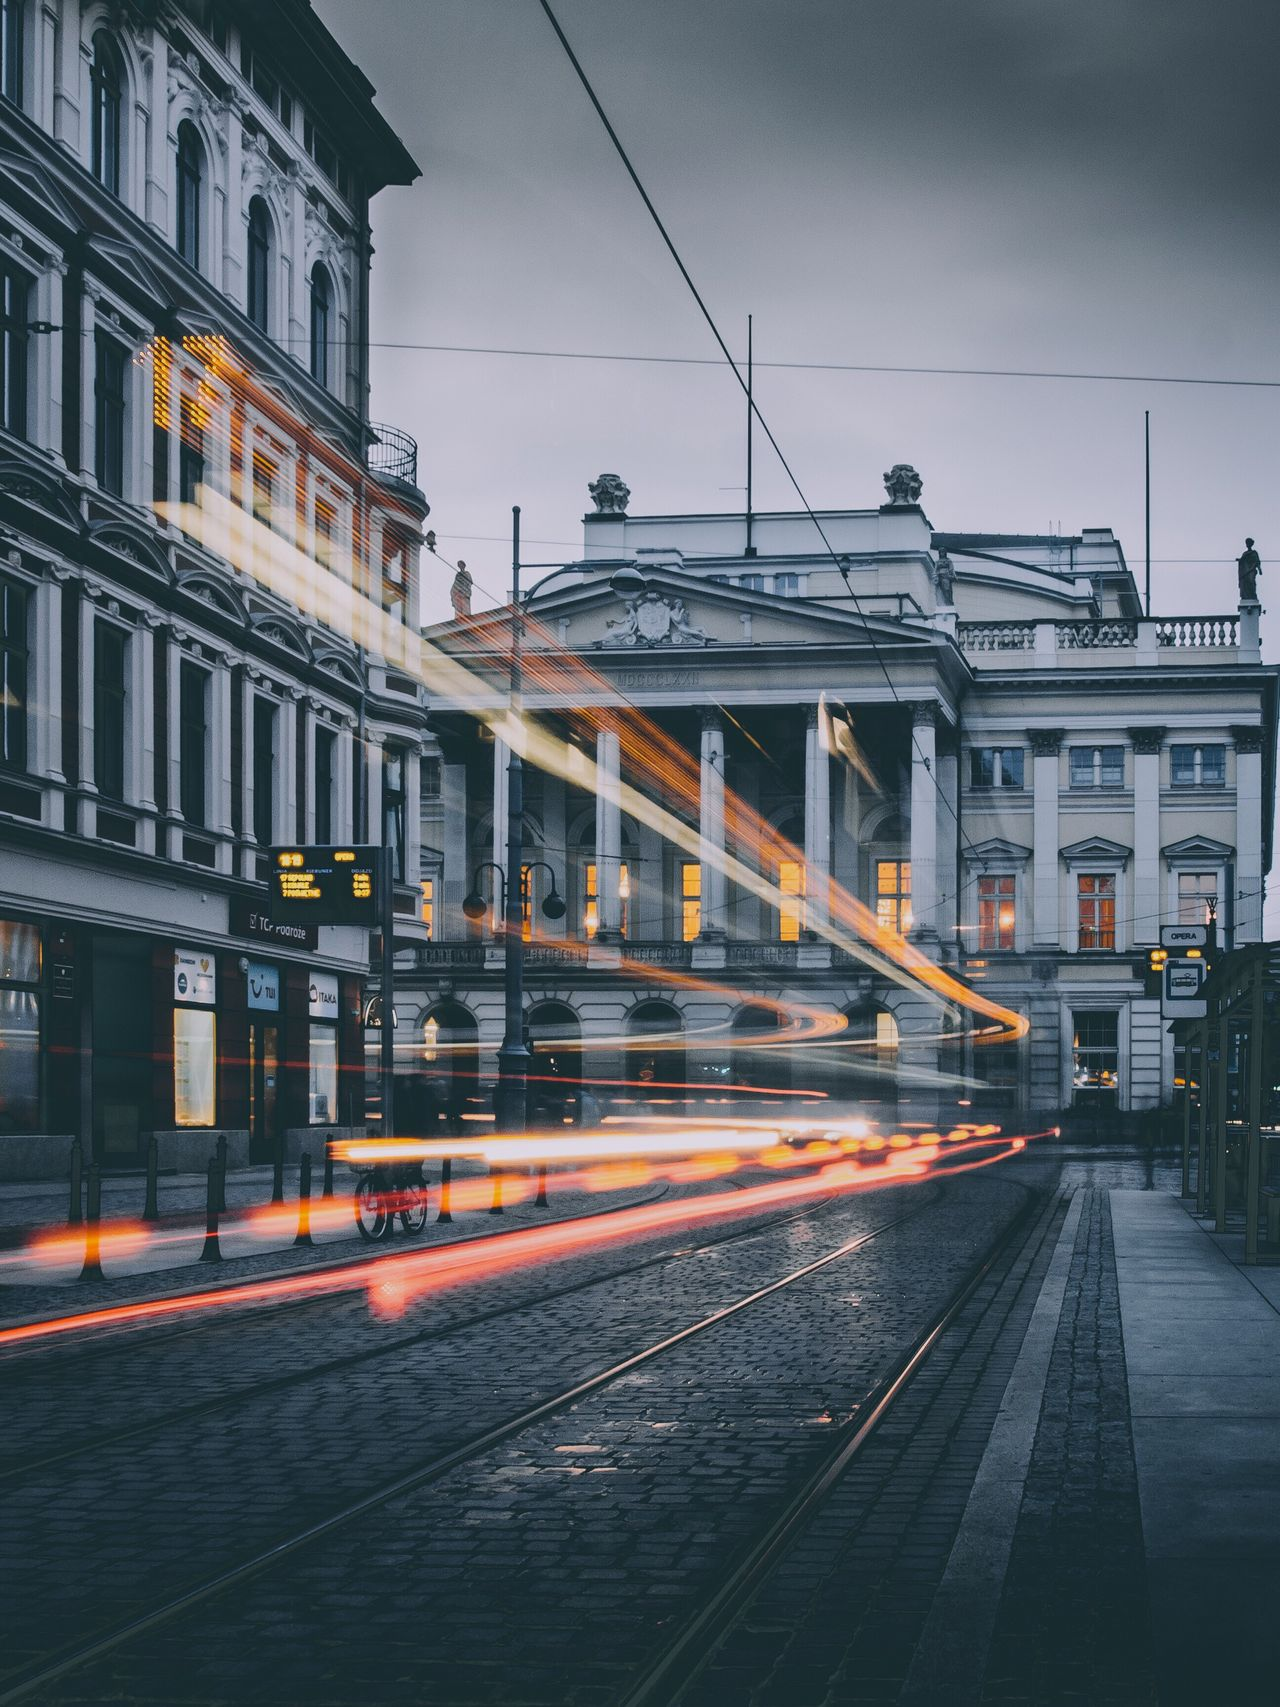 capturing motion Building Exterior Street Built Structure Transportation Architecture City Illuminated Street Light Long Exposure Motion Speed Outdoors Night Road Light Trail No People Sky Embrace Urban Life